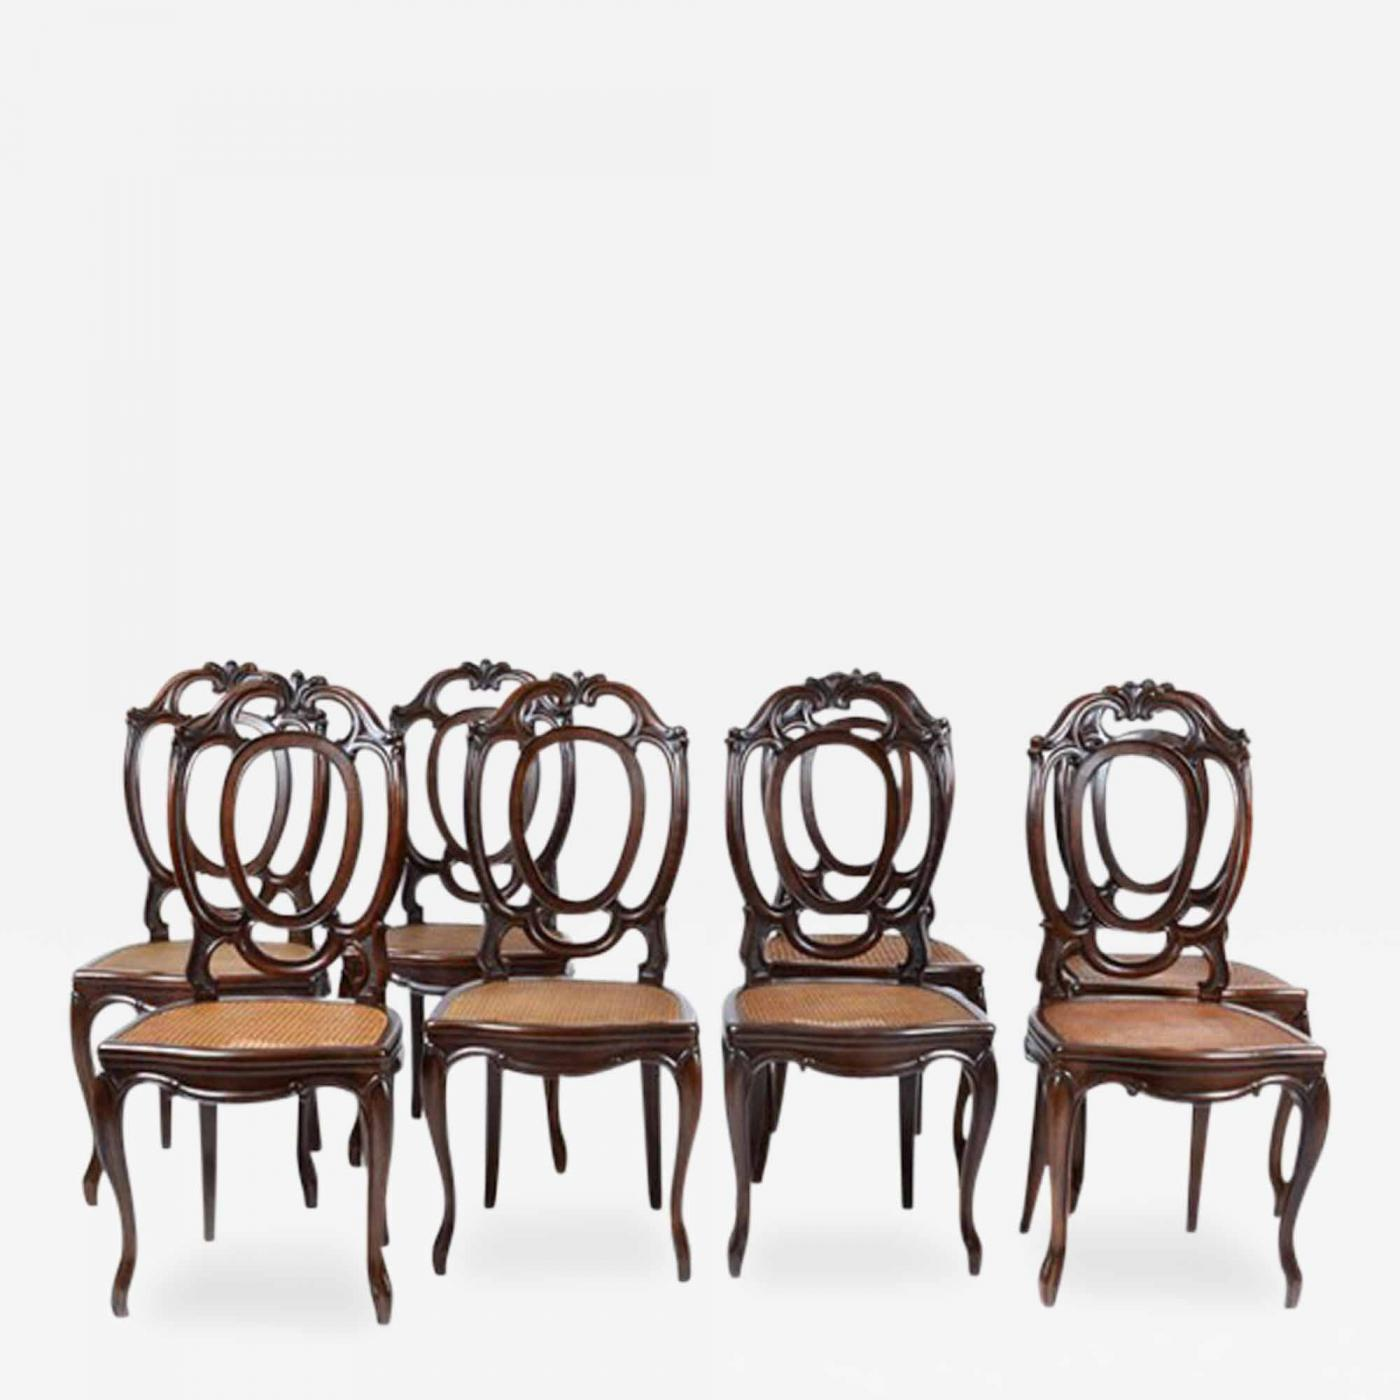 Listings / Furniture / Seating / Dining Chairs · 1920s Antique Italian ... - 1920's Antique Italian Set Of 8 Dining Chairs, Mahogany